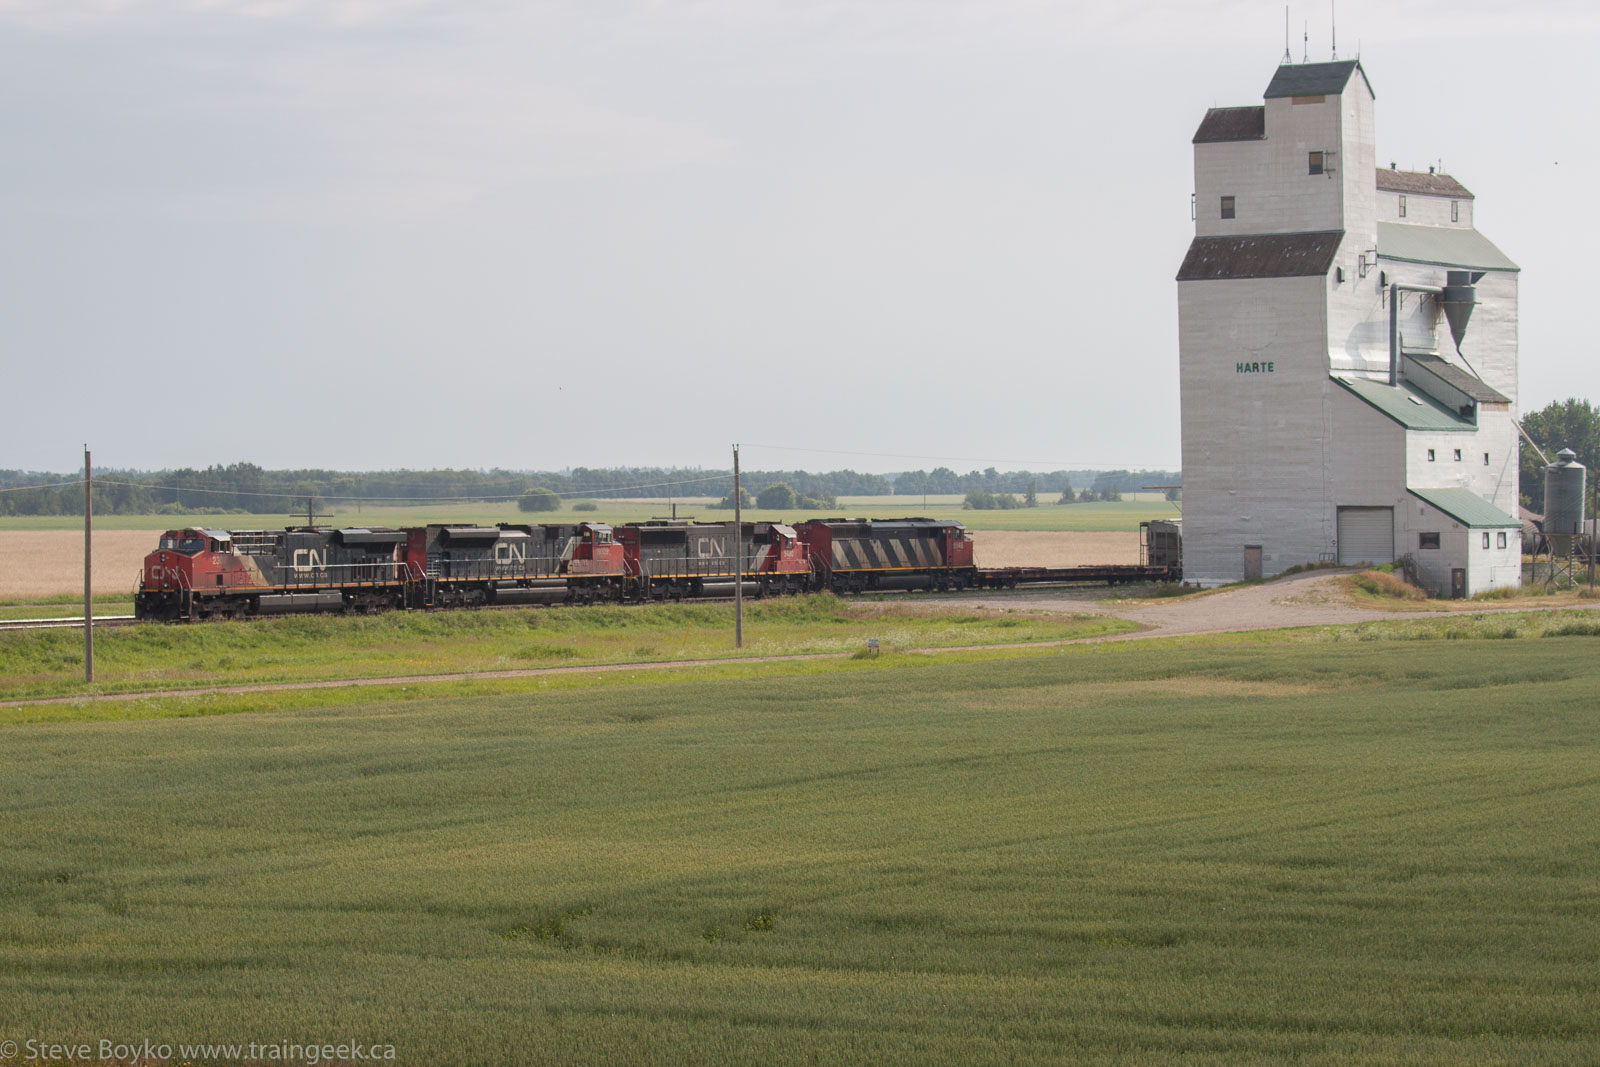 CN 2307, 8009, 5480, and 5548 at Harte, MB 2014/08/04